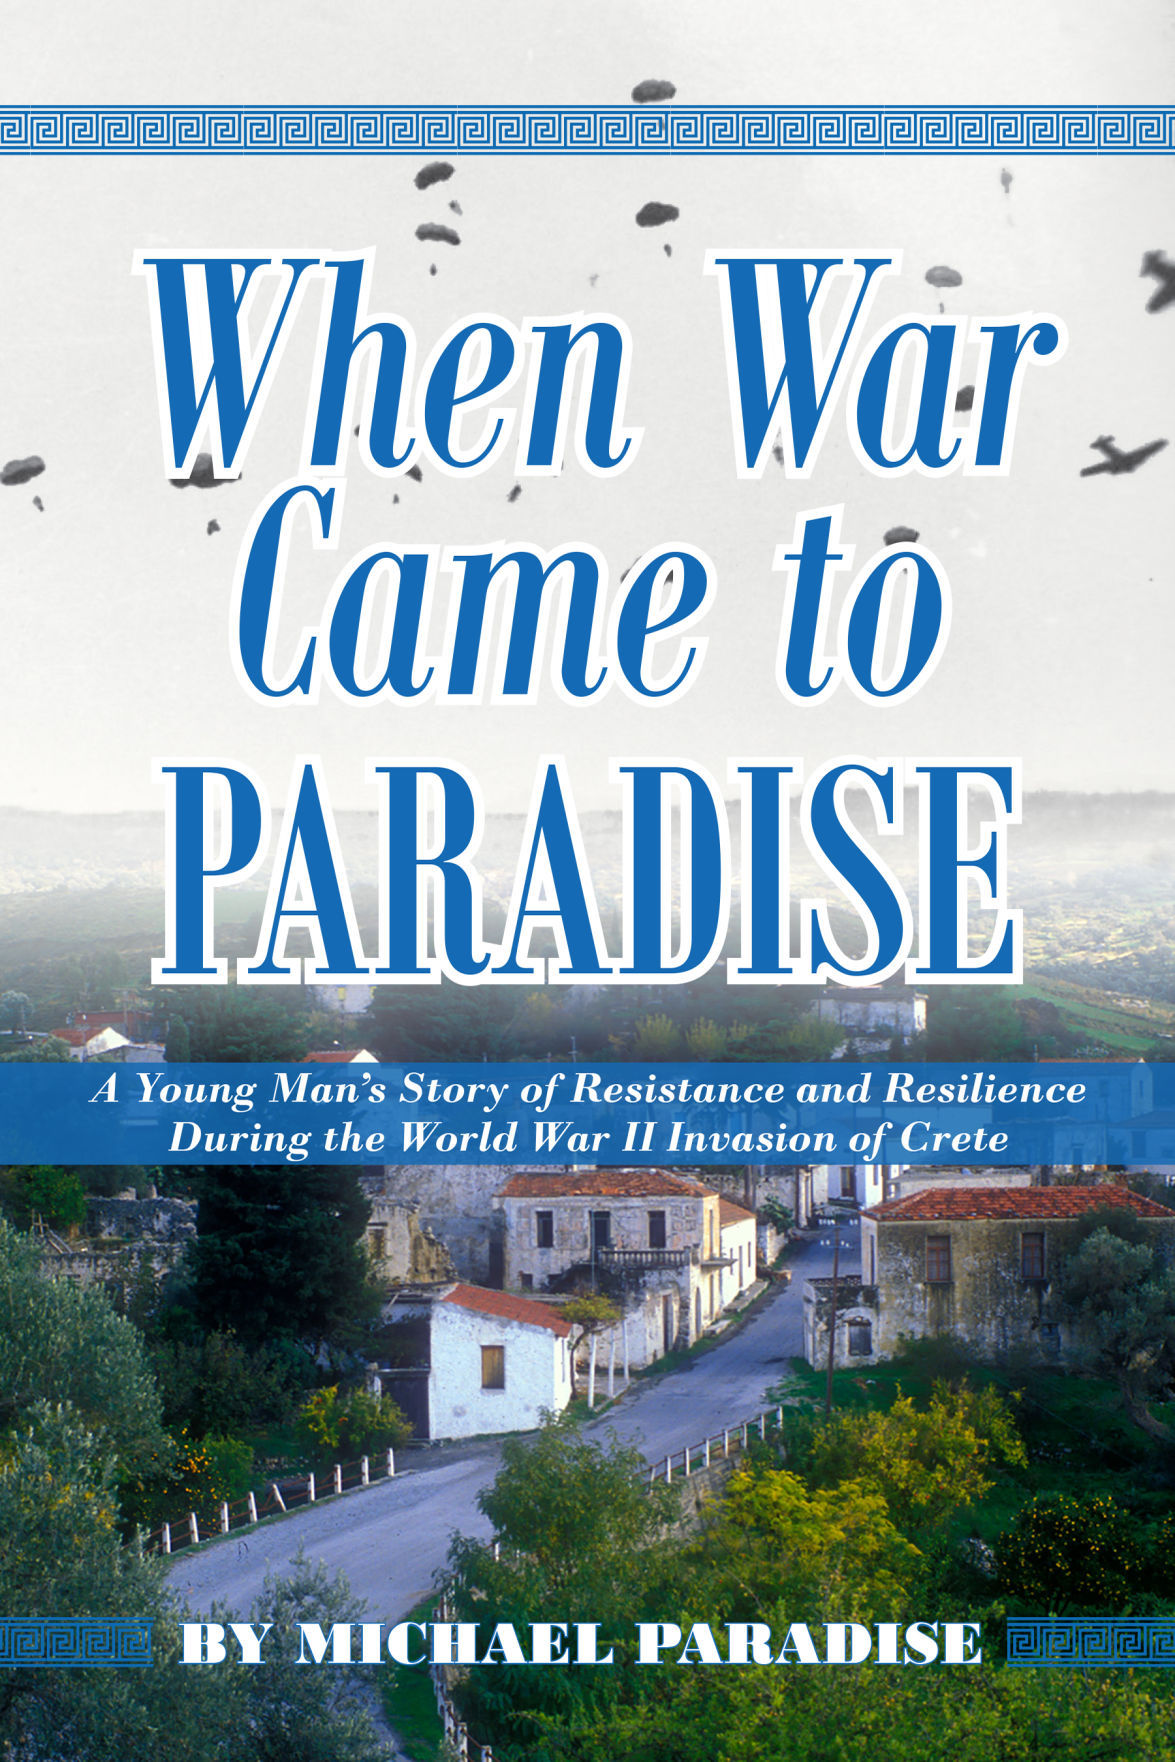 When War Came to Paradise